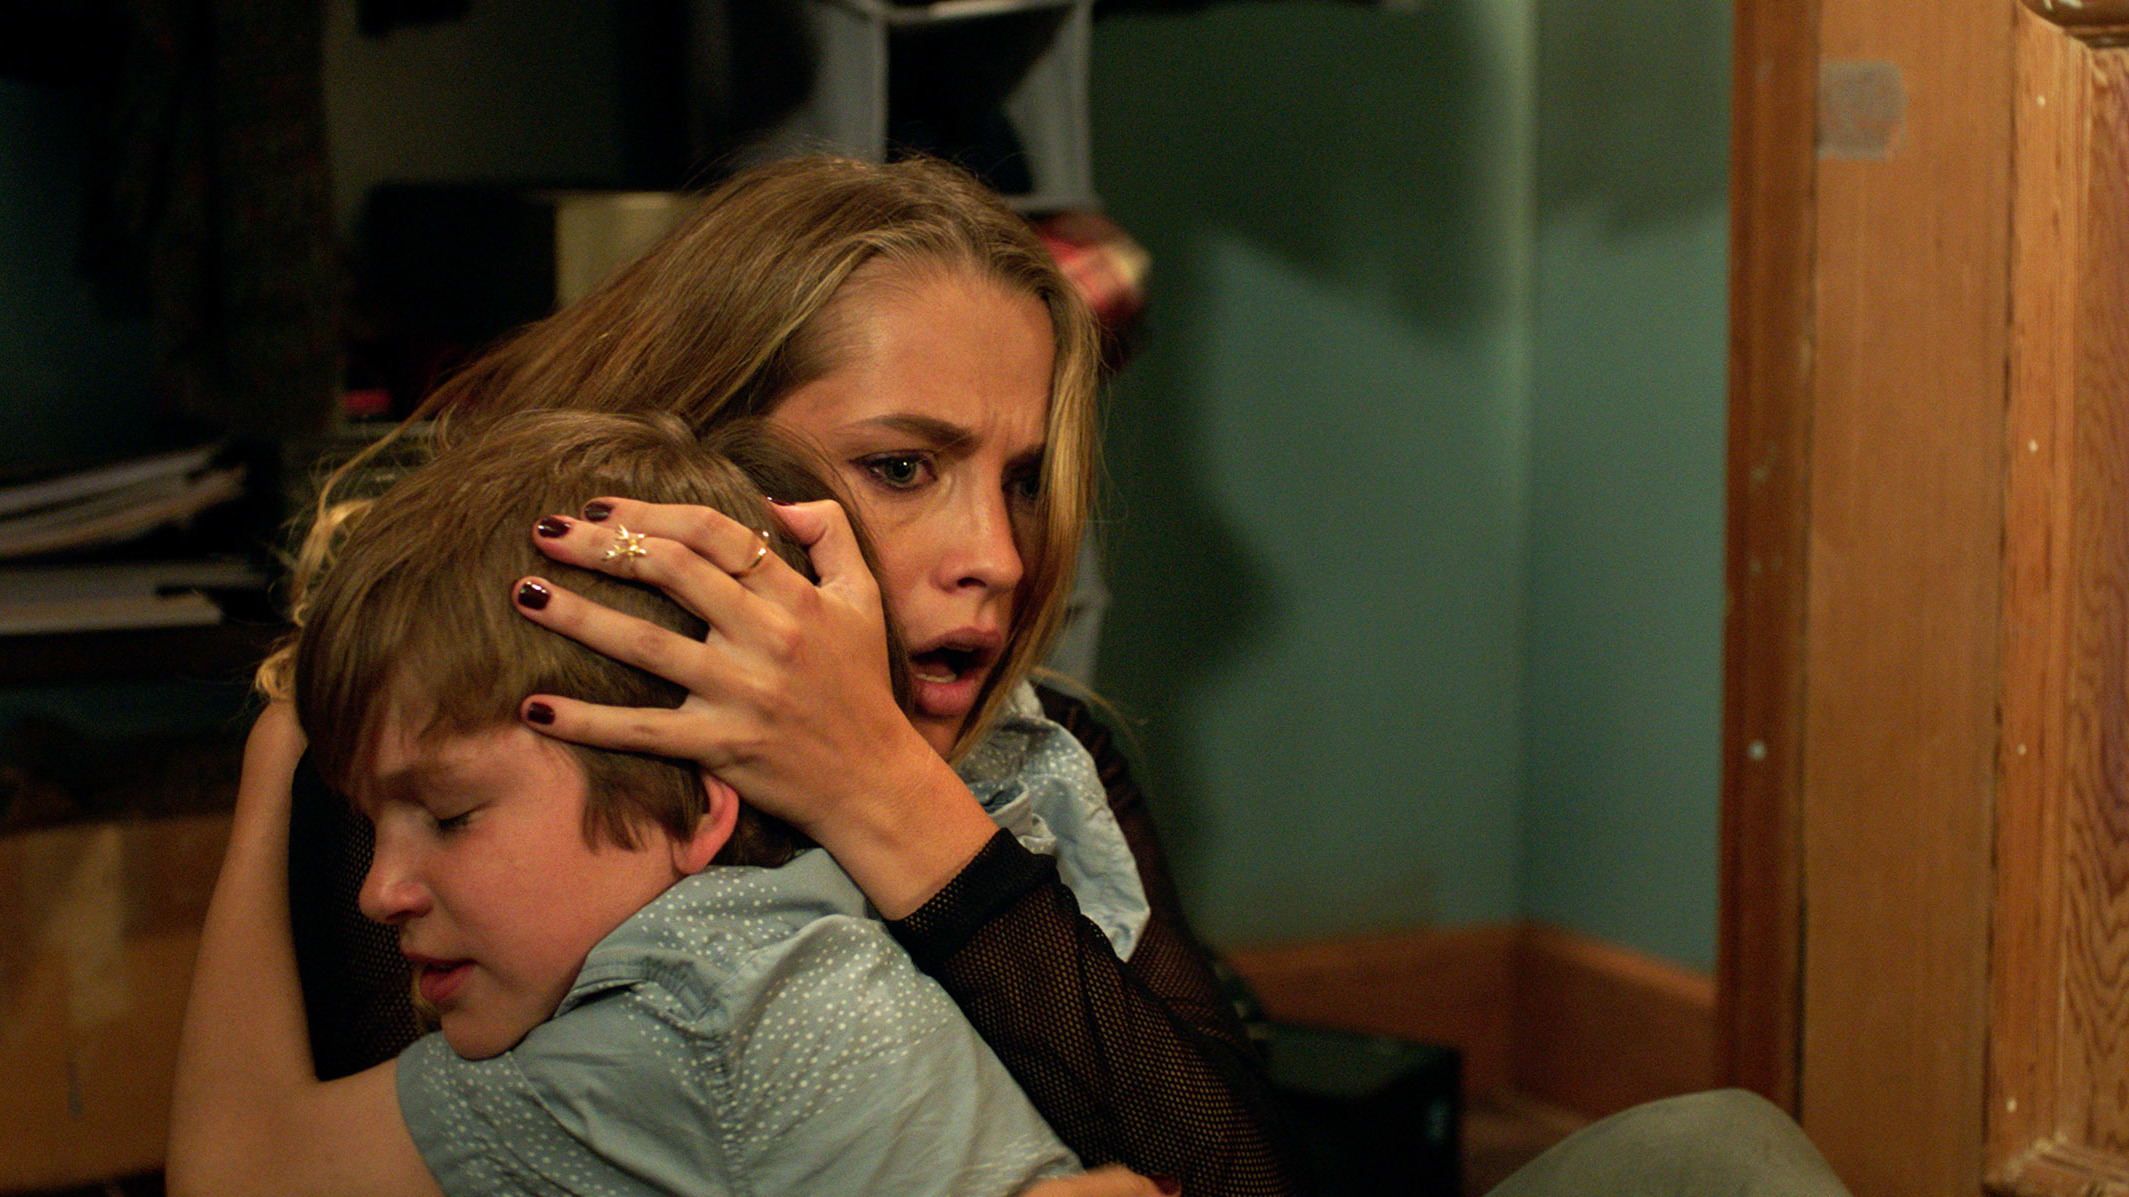 'Lights Out': A Scary Swedish Short Spawns A Summer Hit